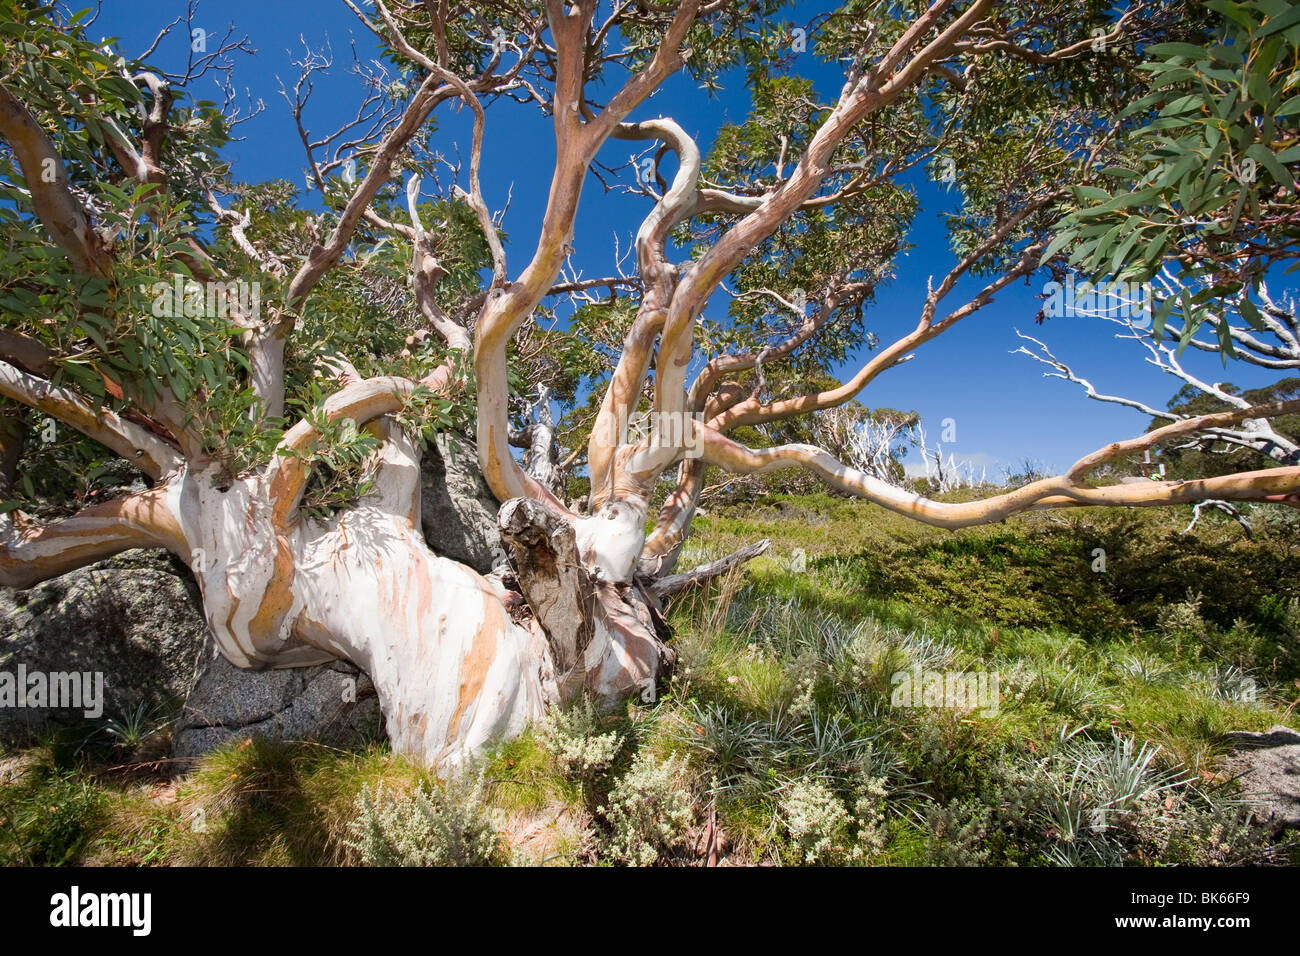 Snow Gum trees in the Snowy Mountains, Australia. - Stock Image